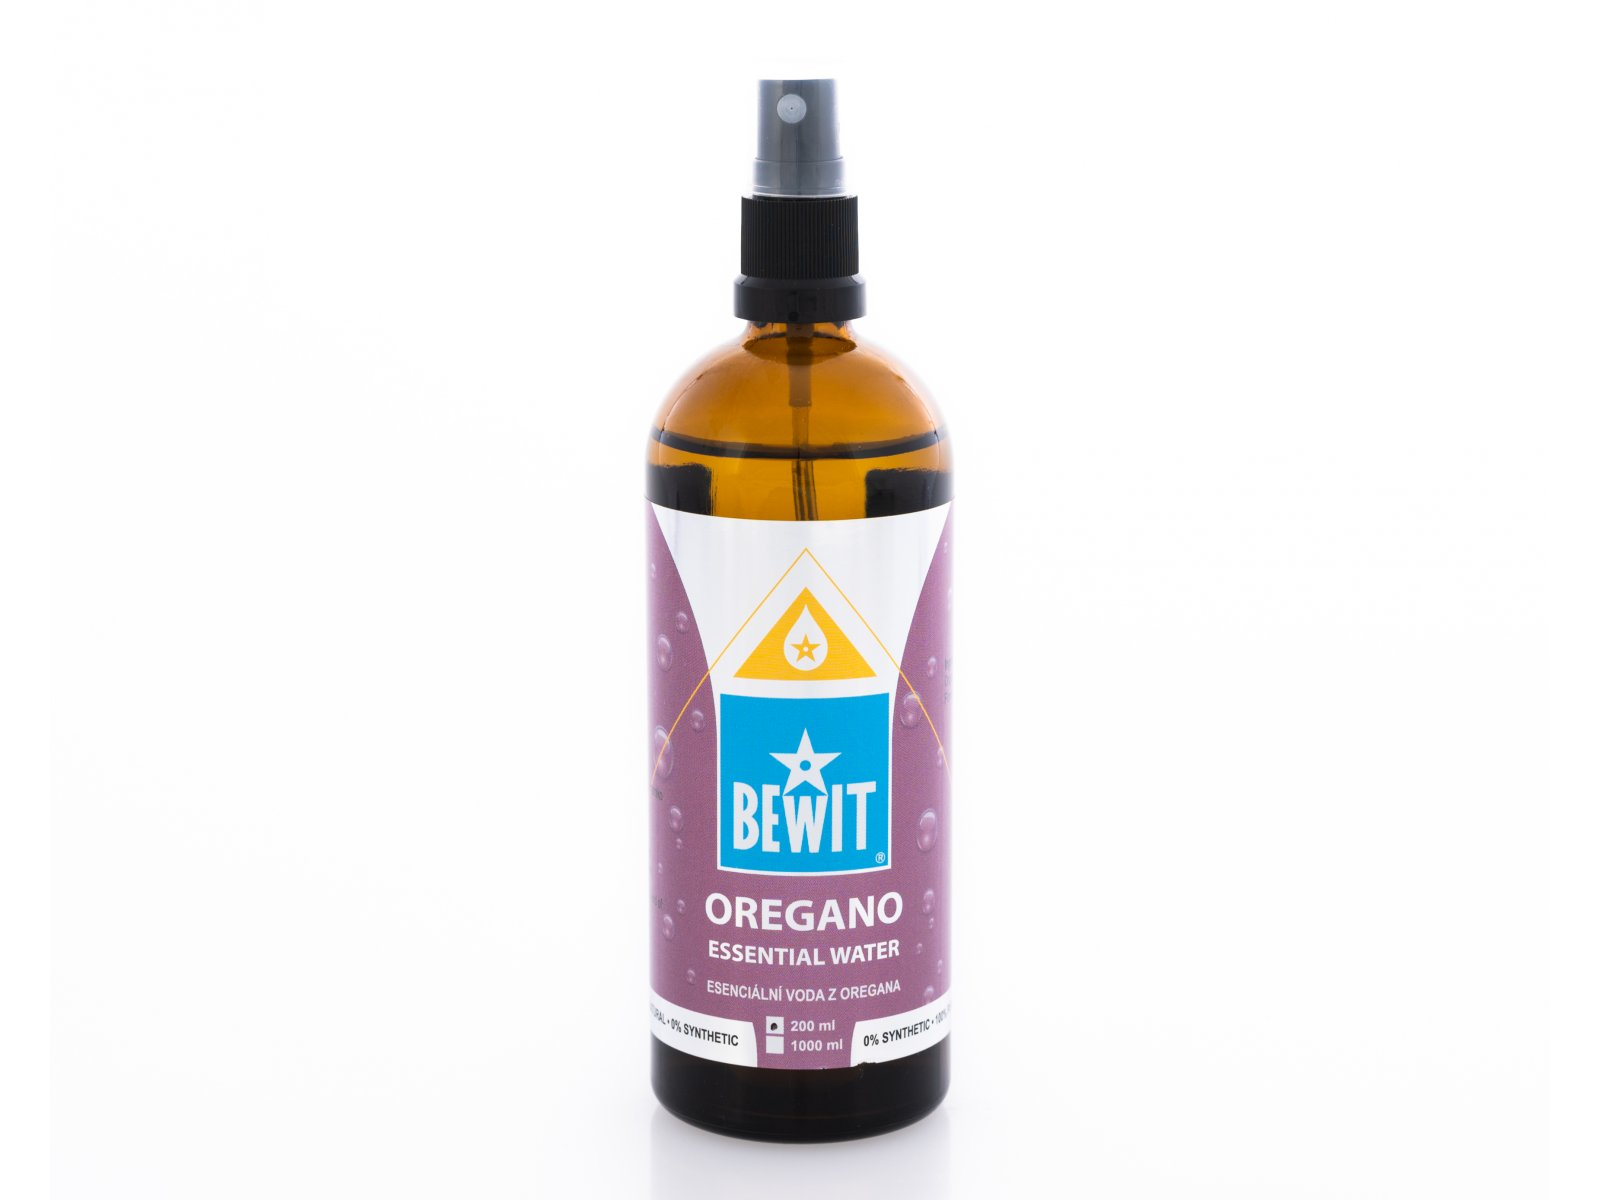 OREGANO ESSENTIAL WATER